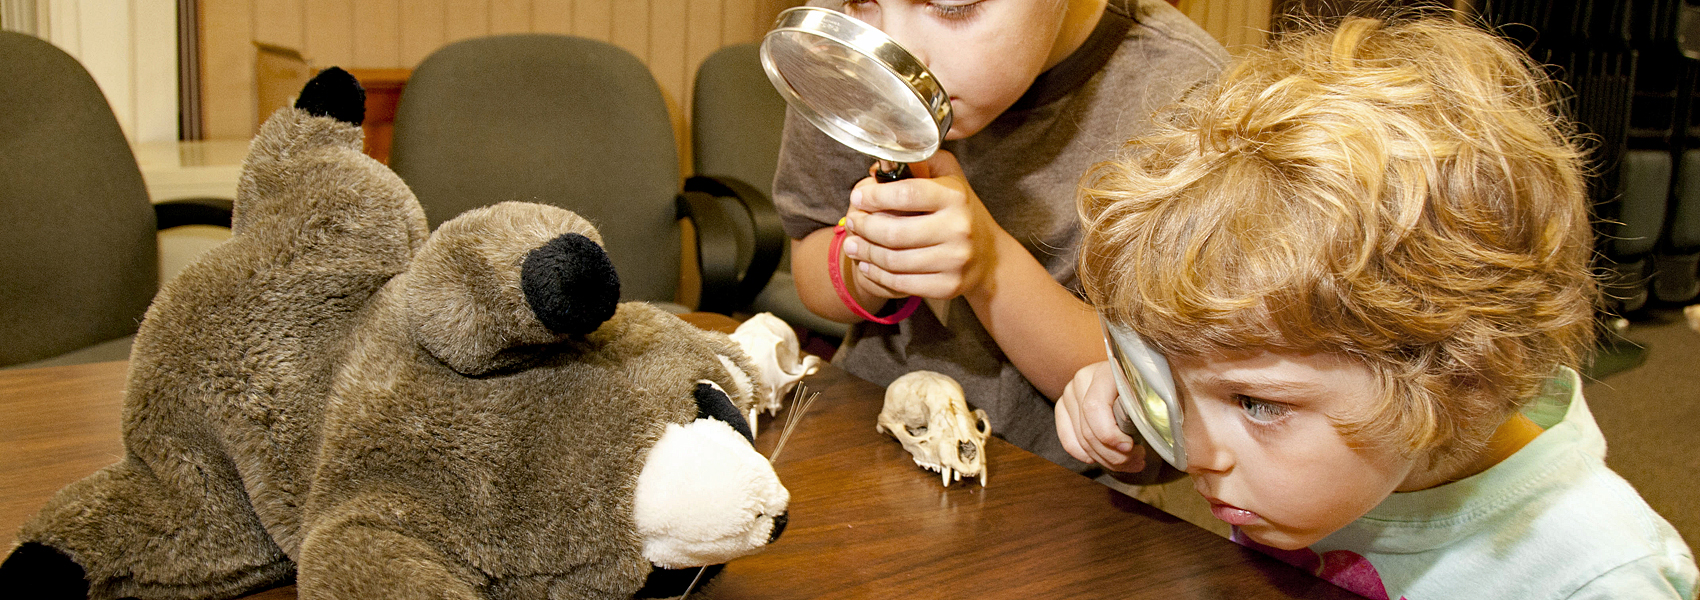 Youngsters use magnifying glasses to look at a teddy bear